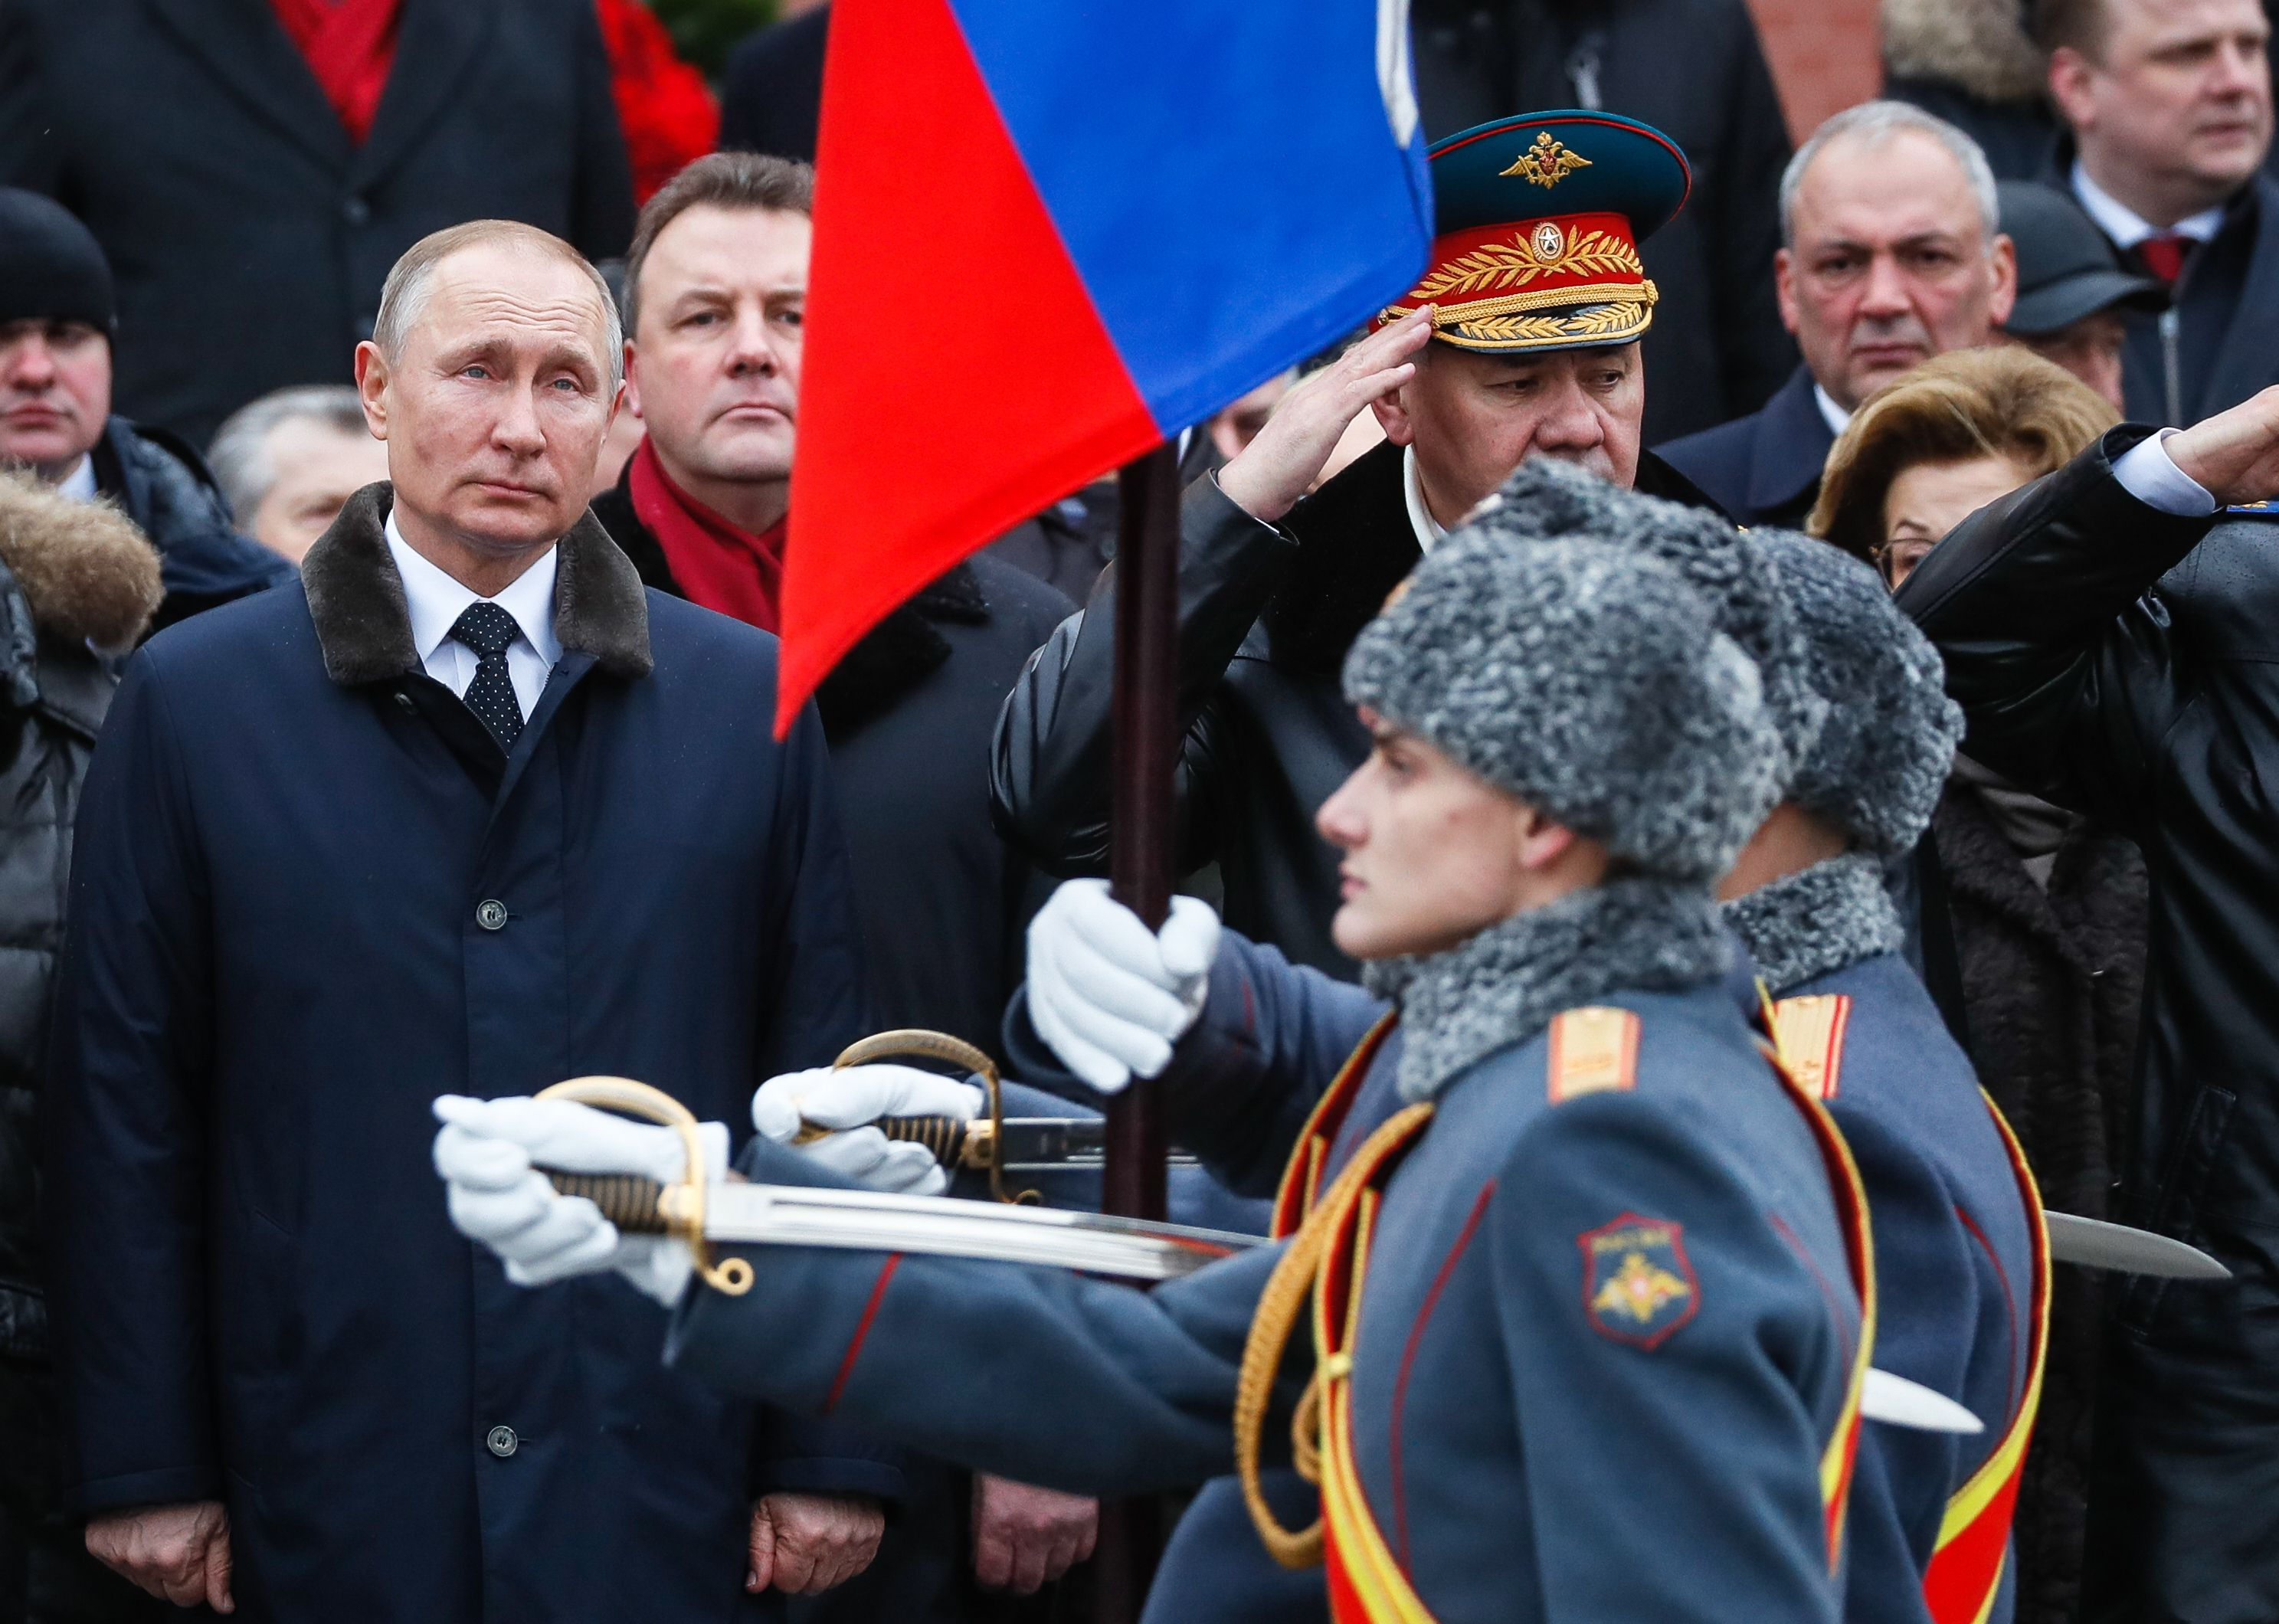 Putin Prods Russian Parliament to Make Him President for Life